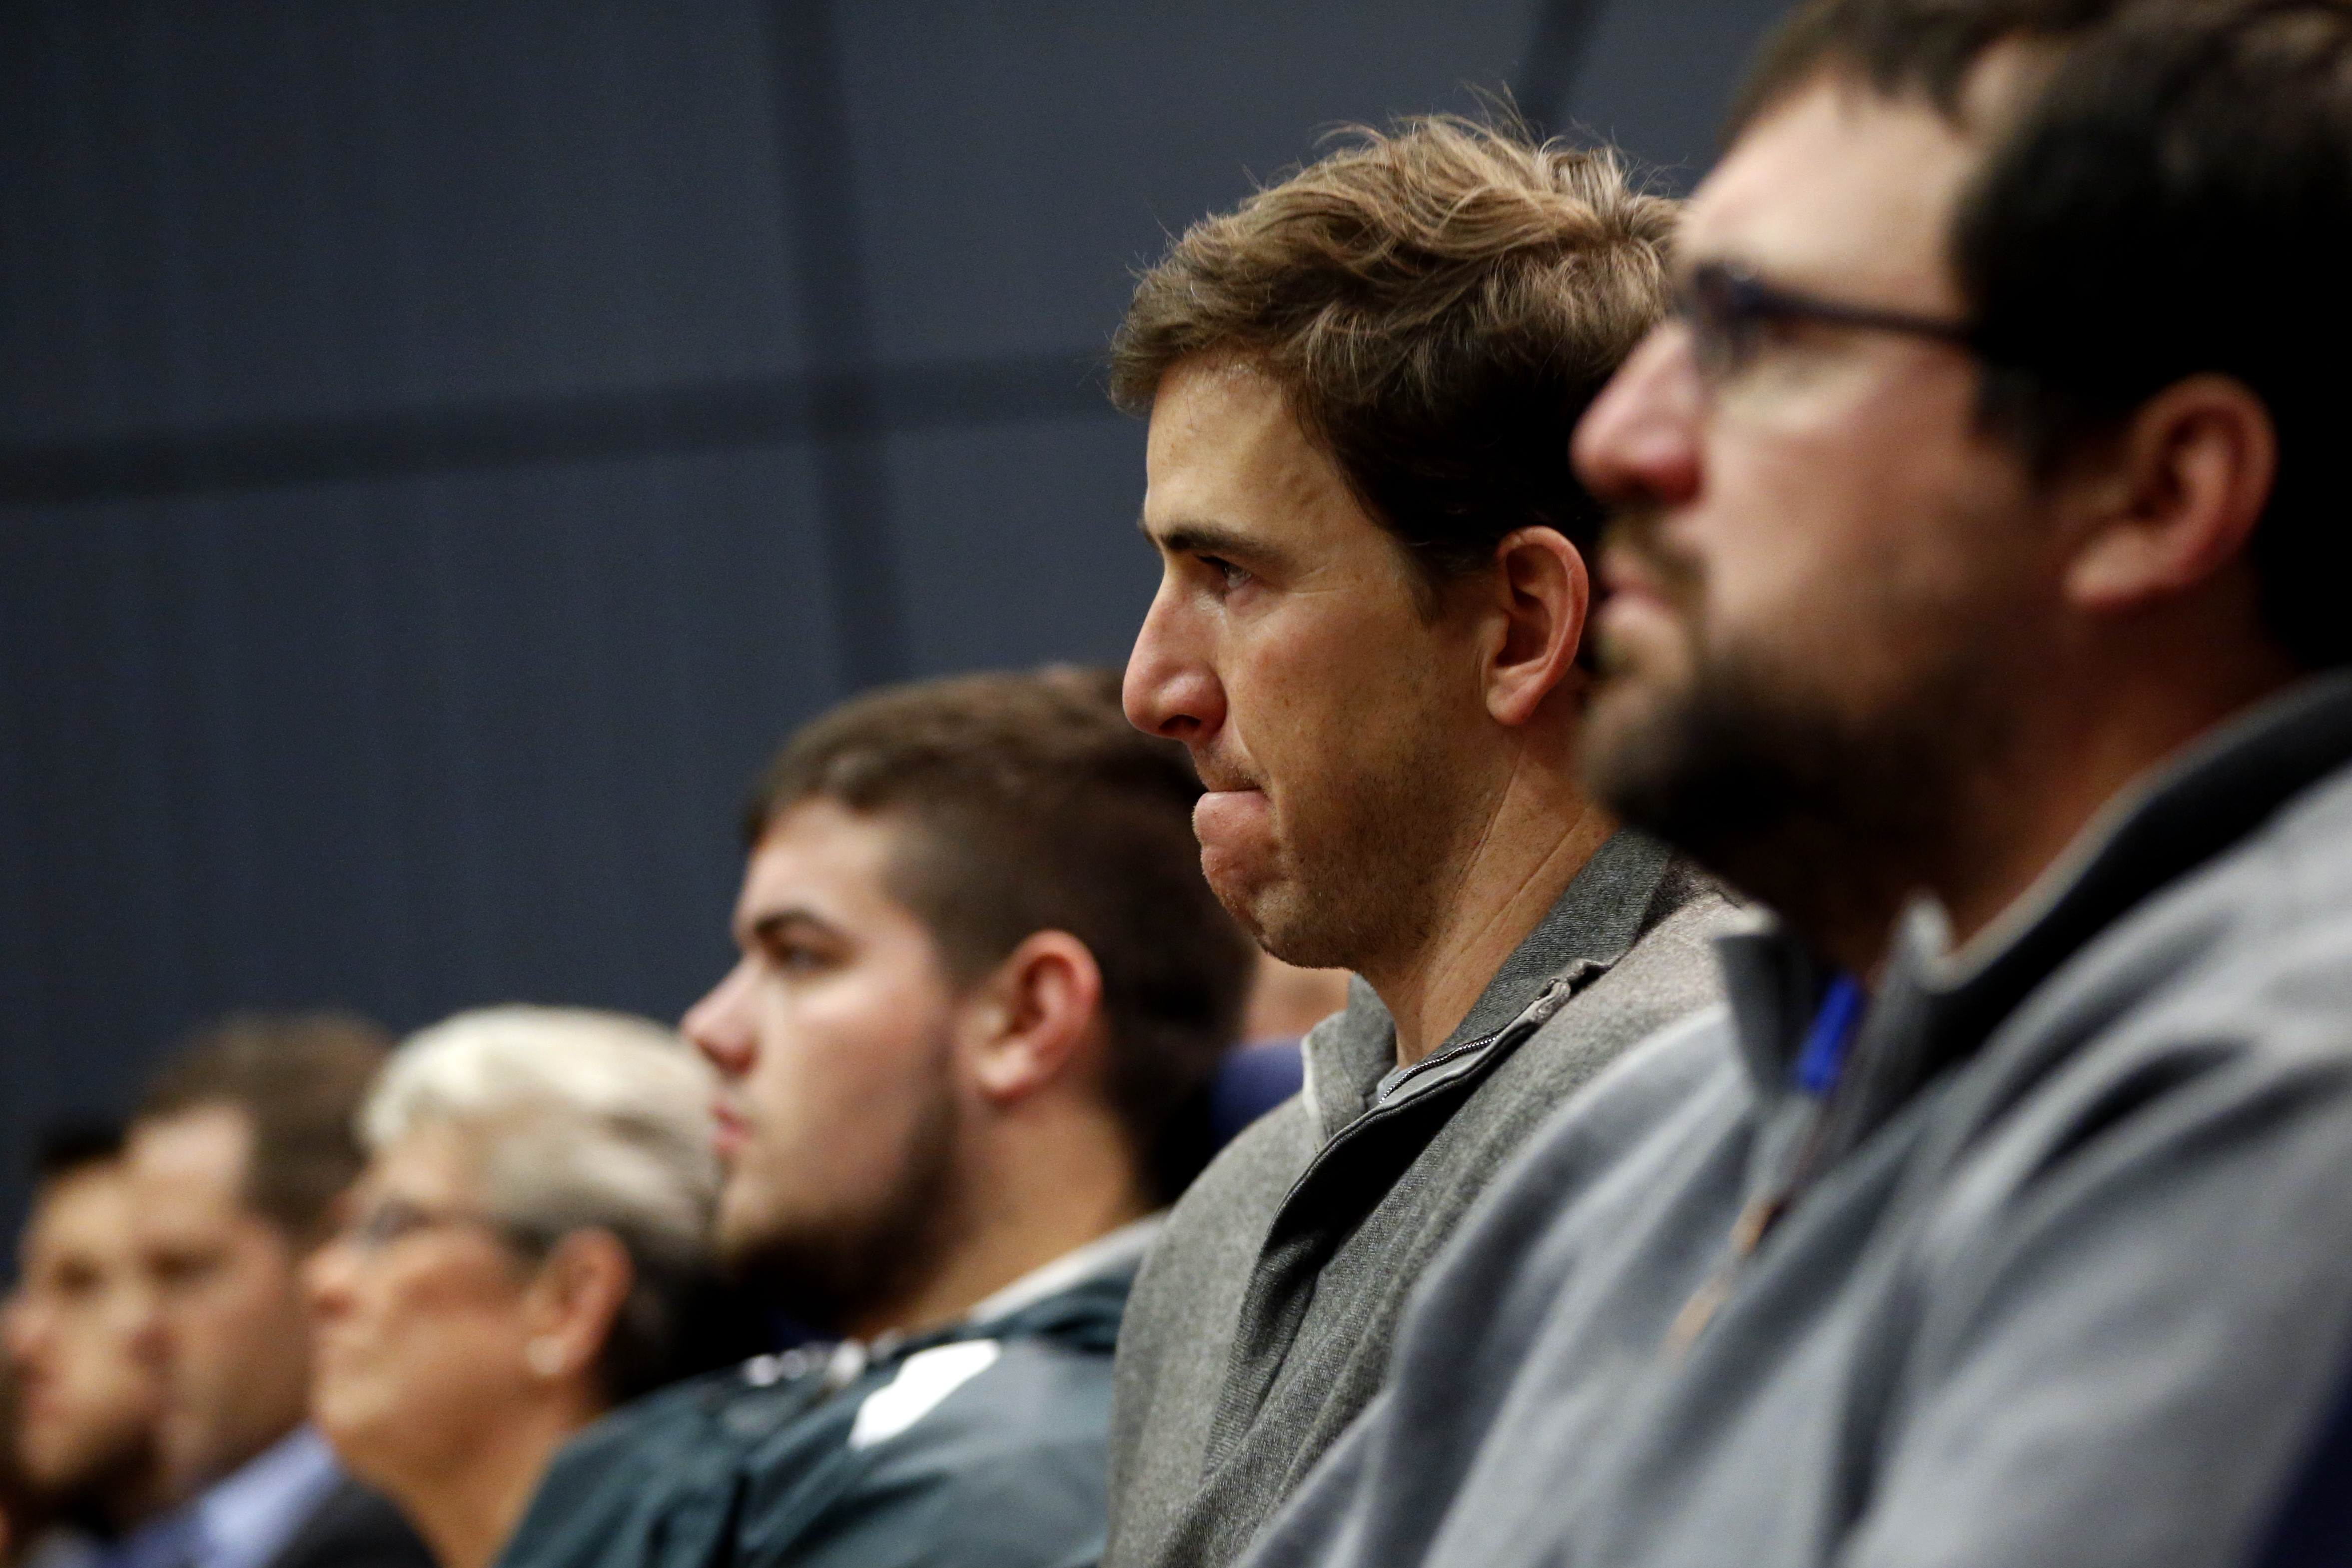 New York Giants quarterback Eli Manning, center, reacts while listening to former head coach Tom Coughlin speak during a news conference, Tuesday, Jan. 5, 2016, in East Rutherford, N.J. (AP Photo/Julio Cortez)